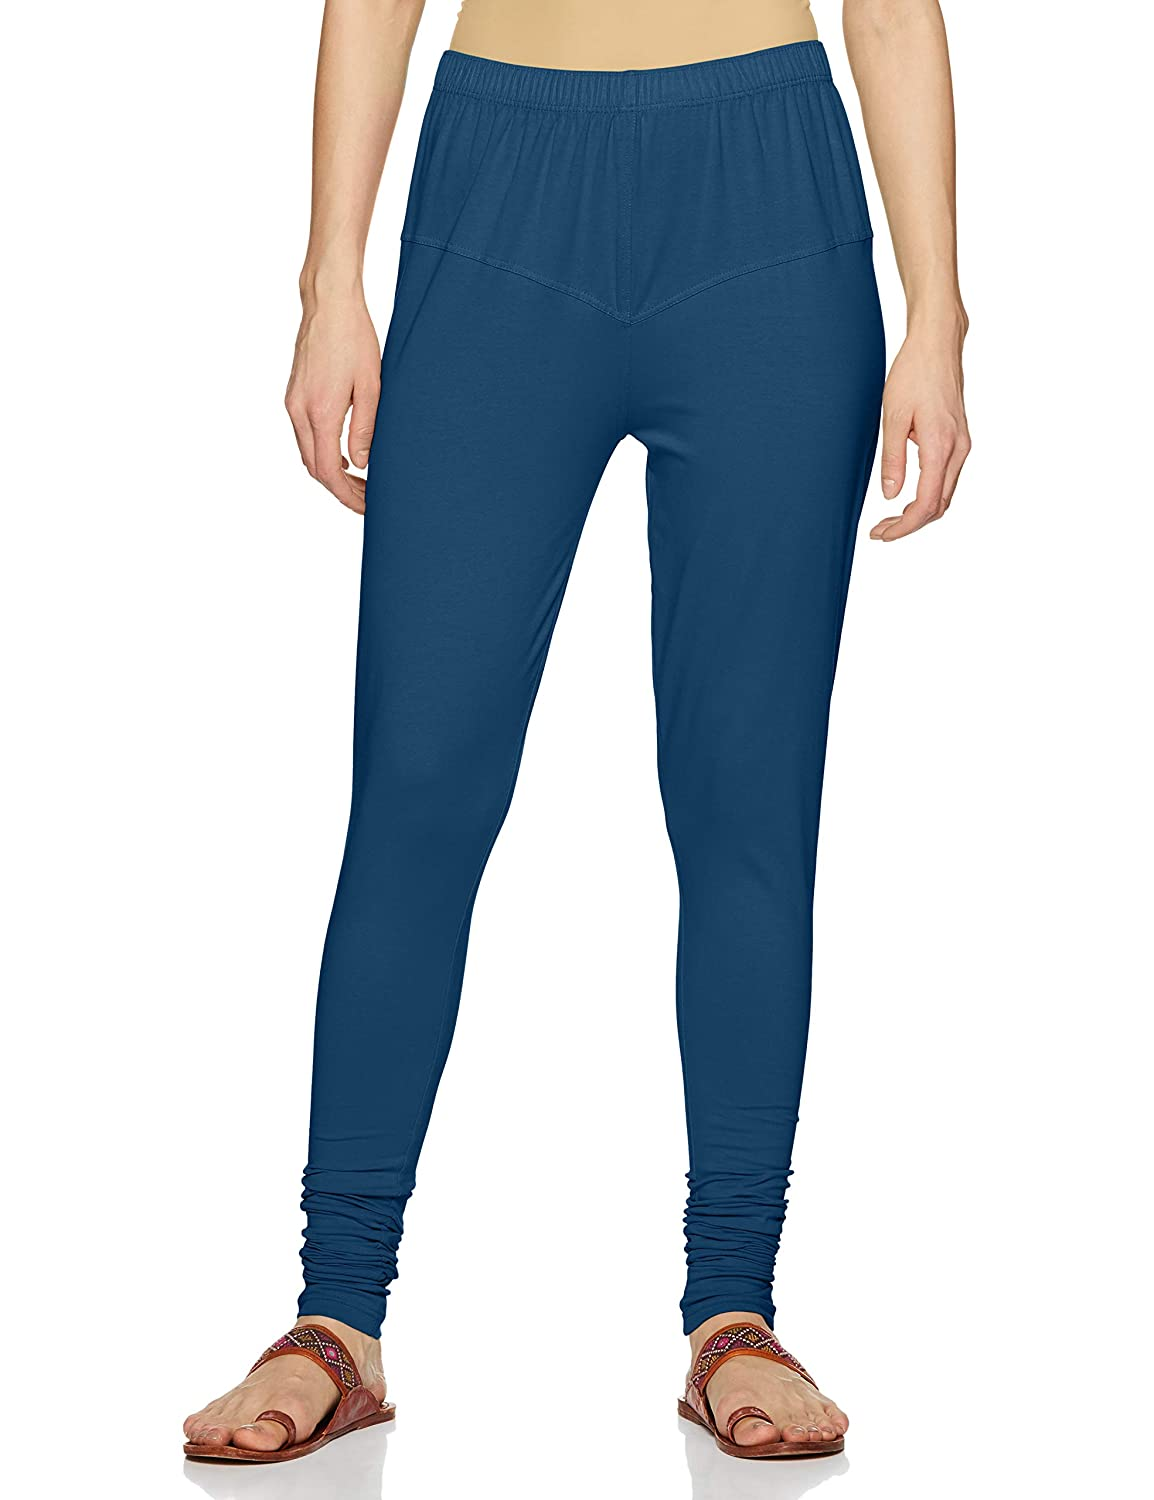 LUX LYRA Women's Leggings Silk_64_Ocean Blue_Free Size